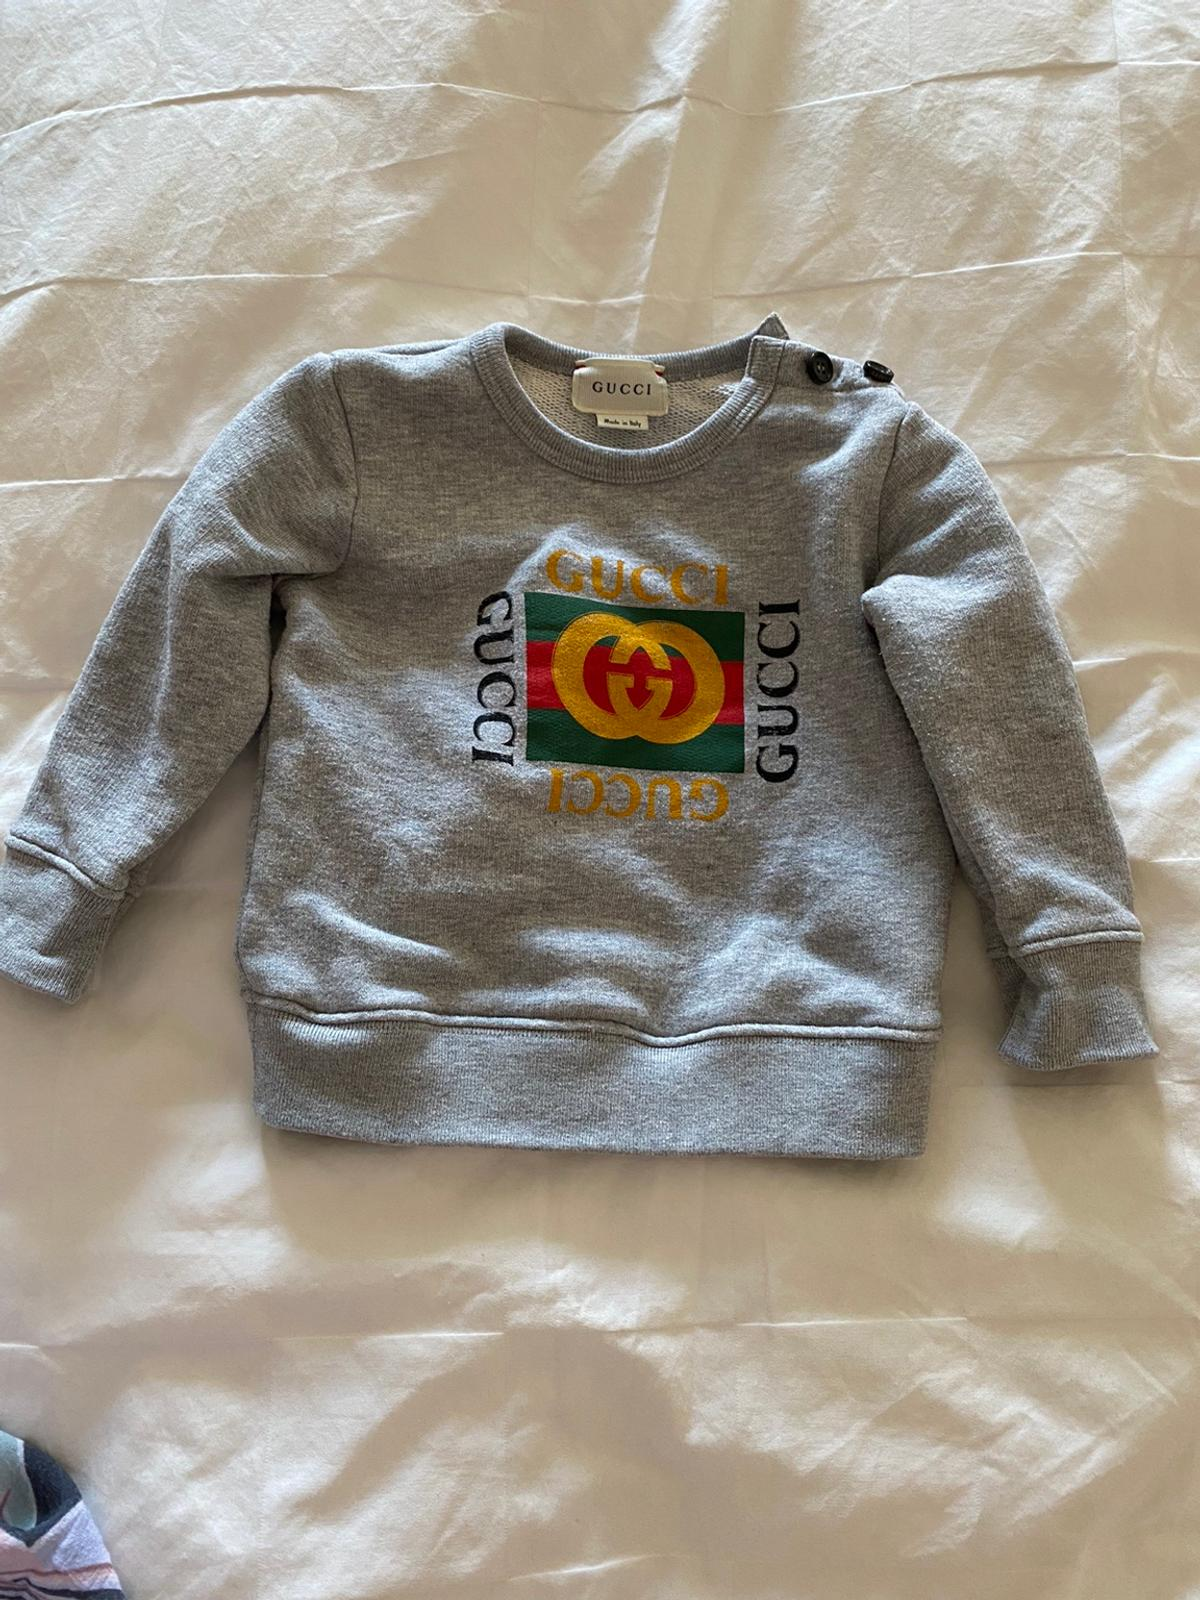 Authentic baby Gucci jumper size 9-12months. Only worn twice.